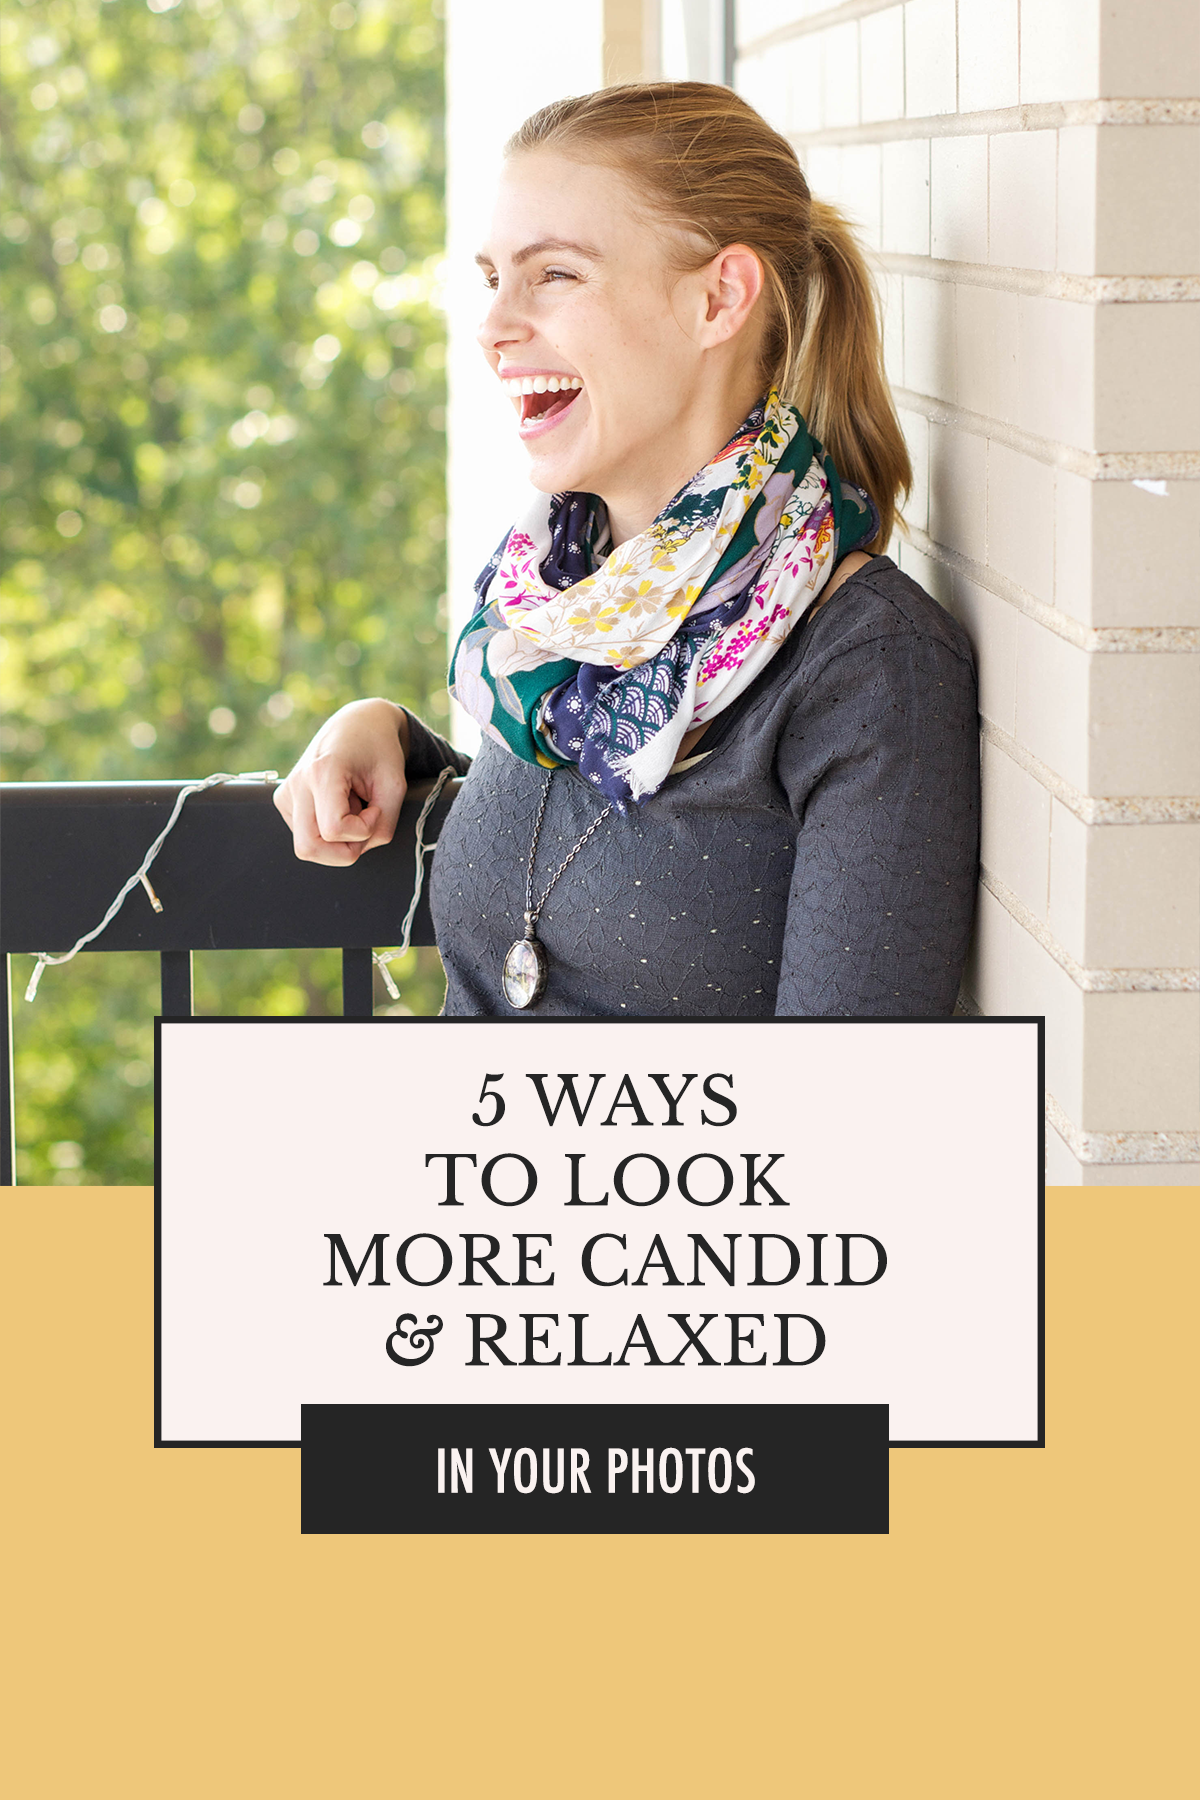 How do people look so happy and relaxed in their photos? Here are 5 tips for loosening up in front of the camera! | 5 Ways to Look More Candid & Relaxed in Photos | Alexis the Greek blog